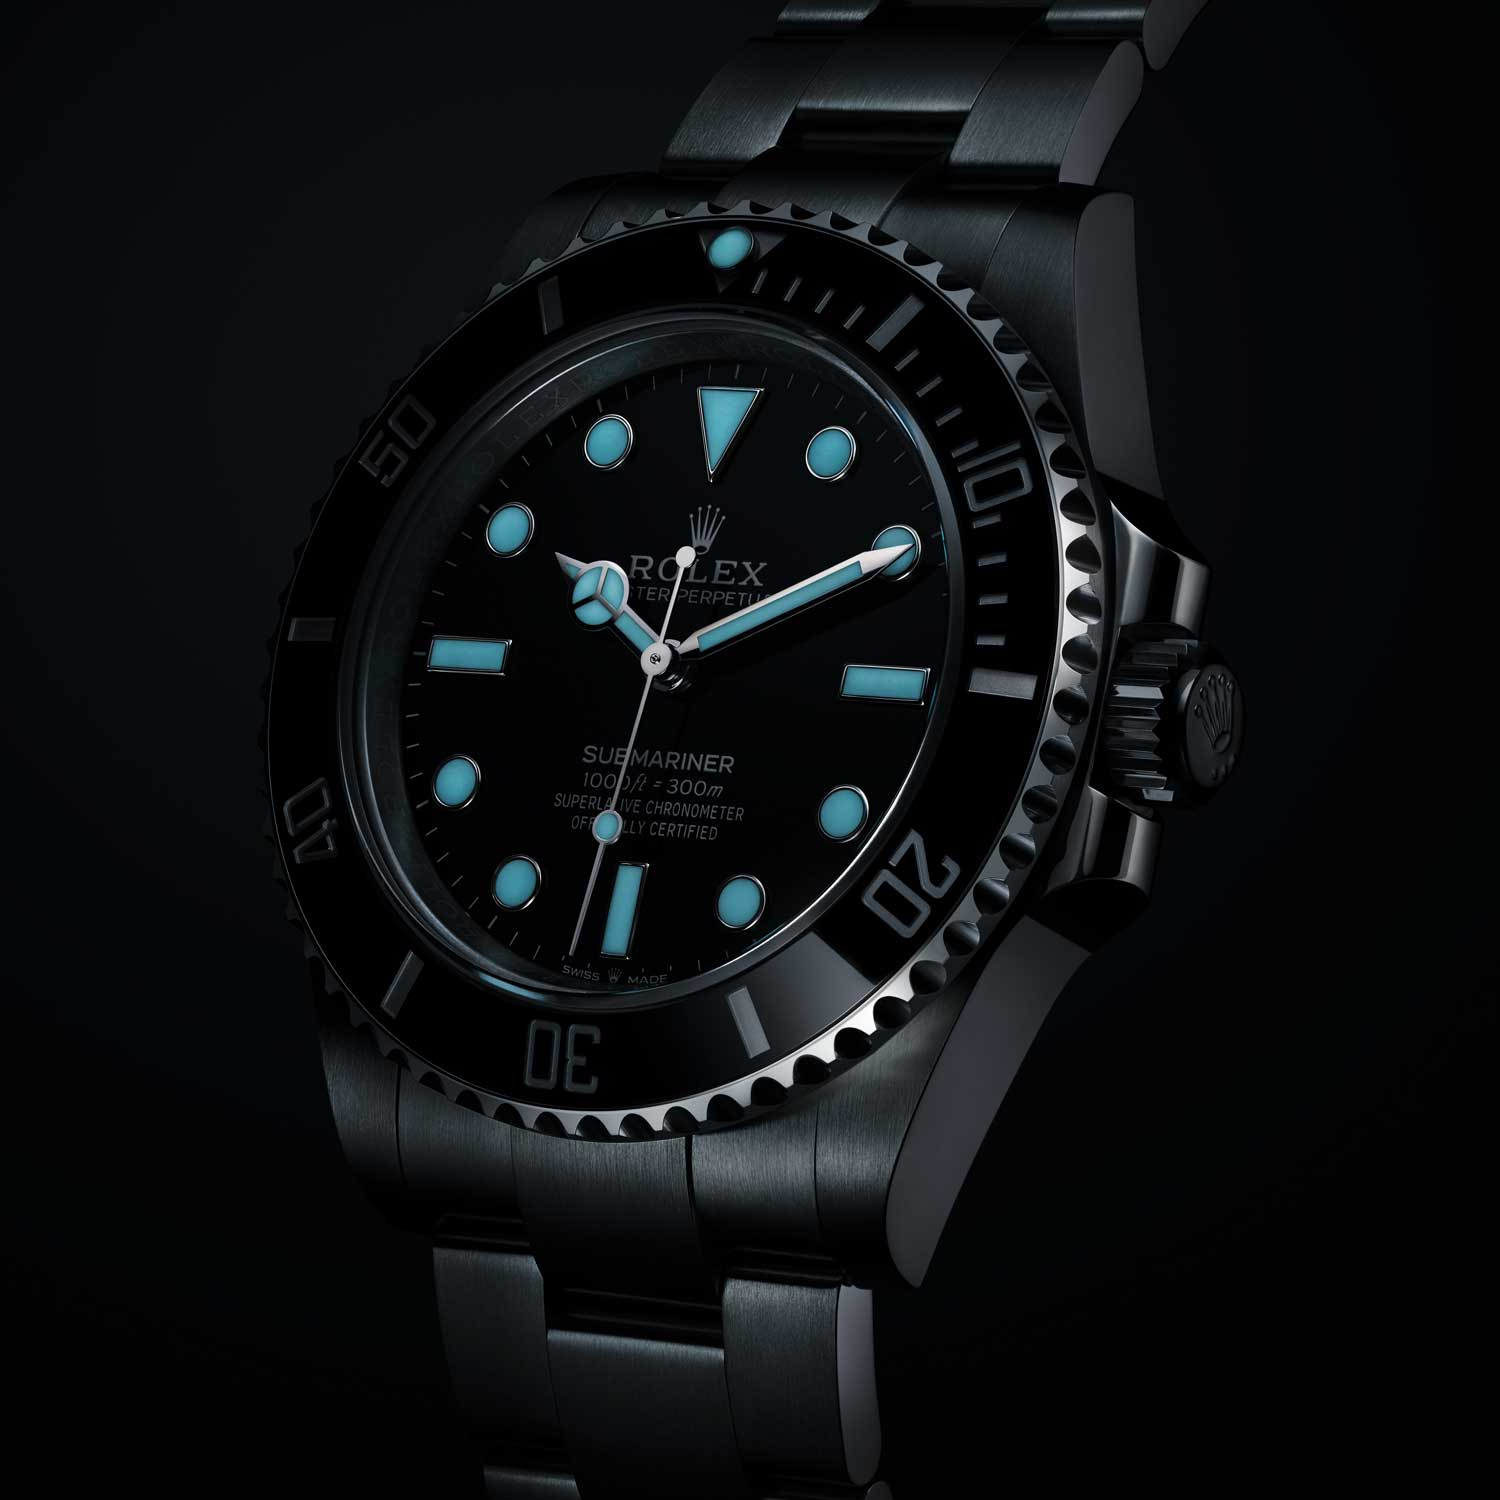 The 2020 no-date Oyster Perpetual Submariner ref. 124060 has a Maxi-style dial with its Chromalight lume contained within applied white gold